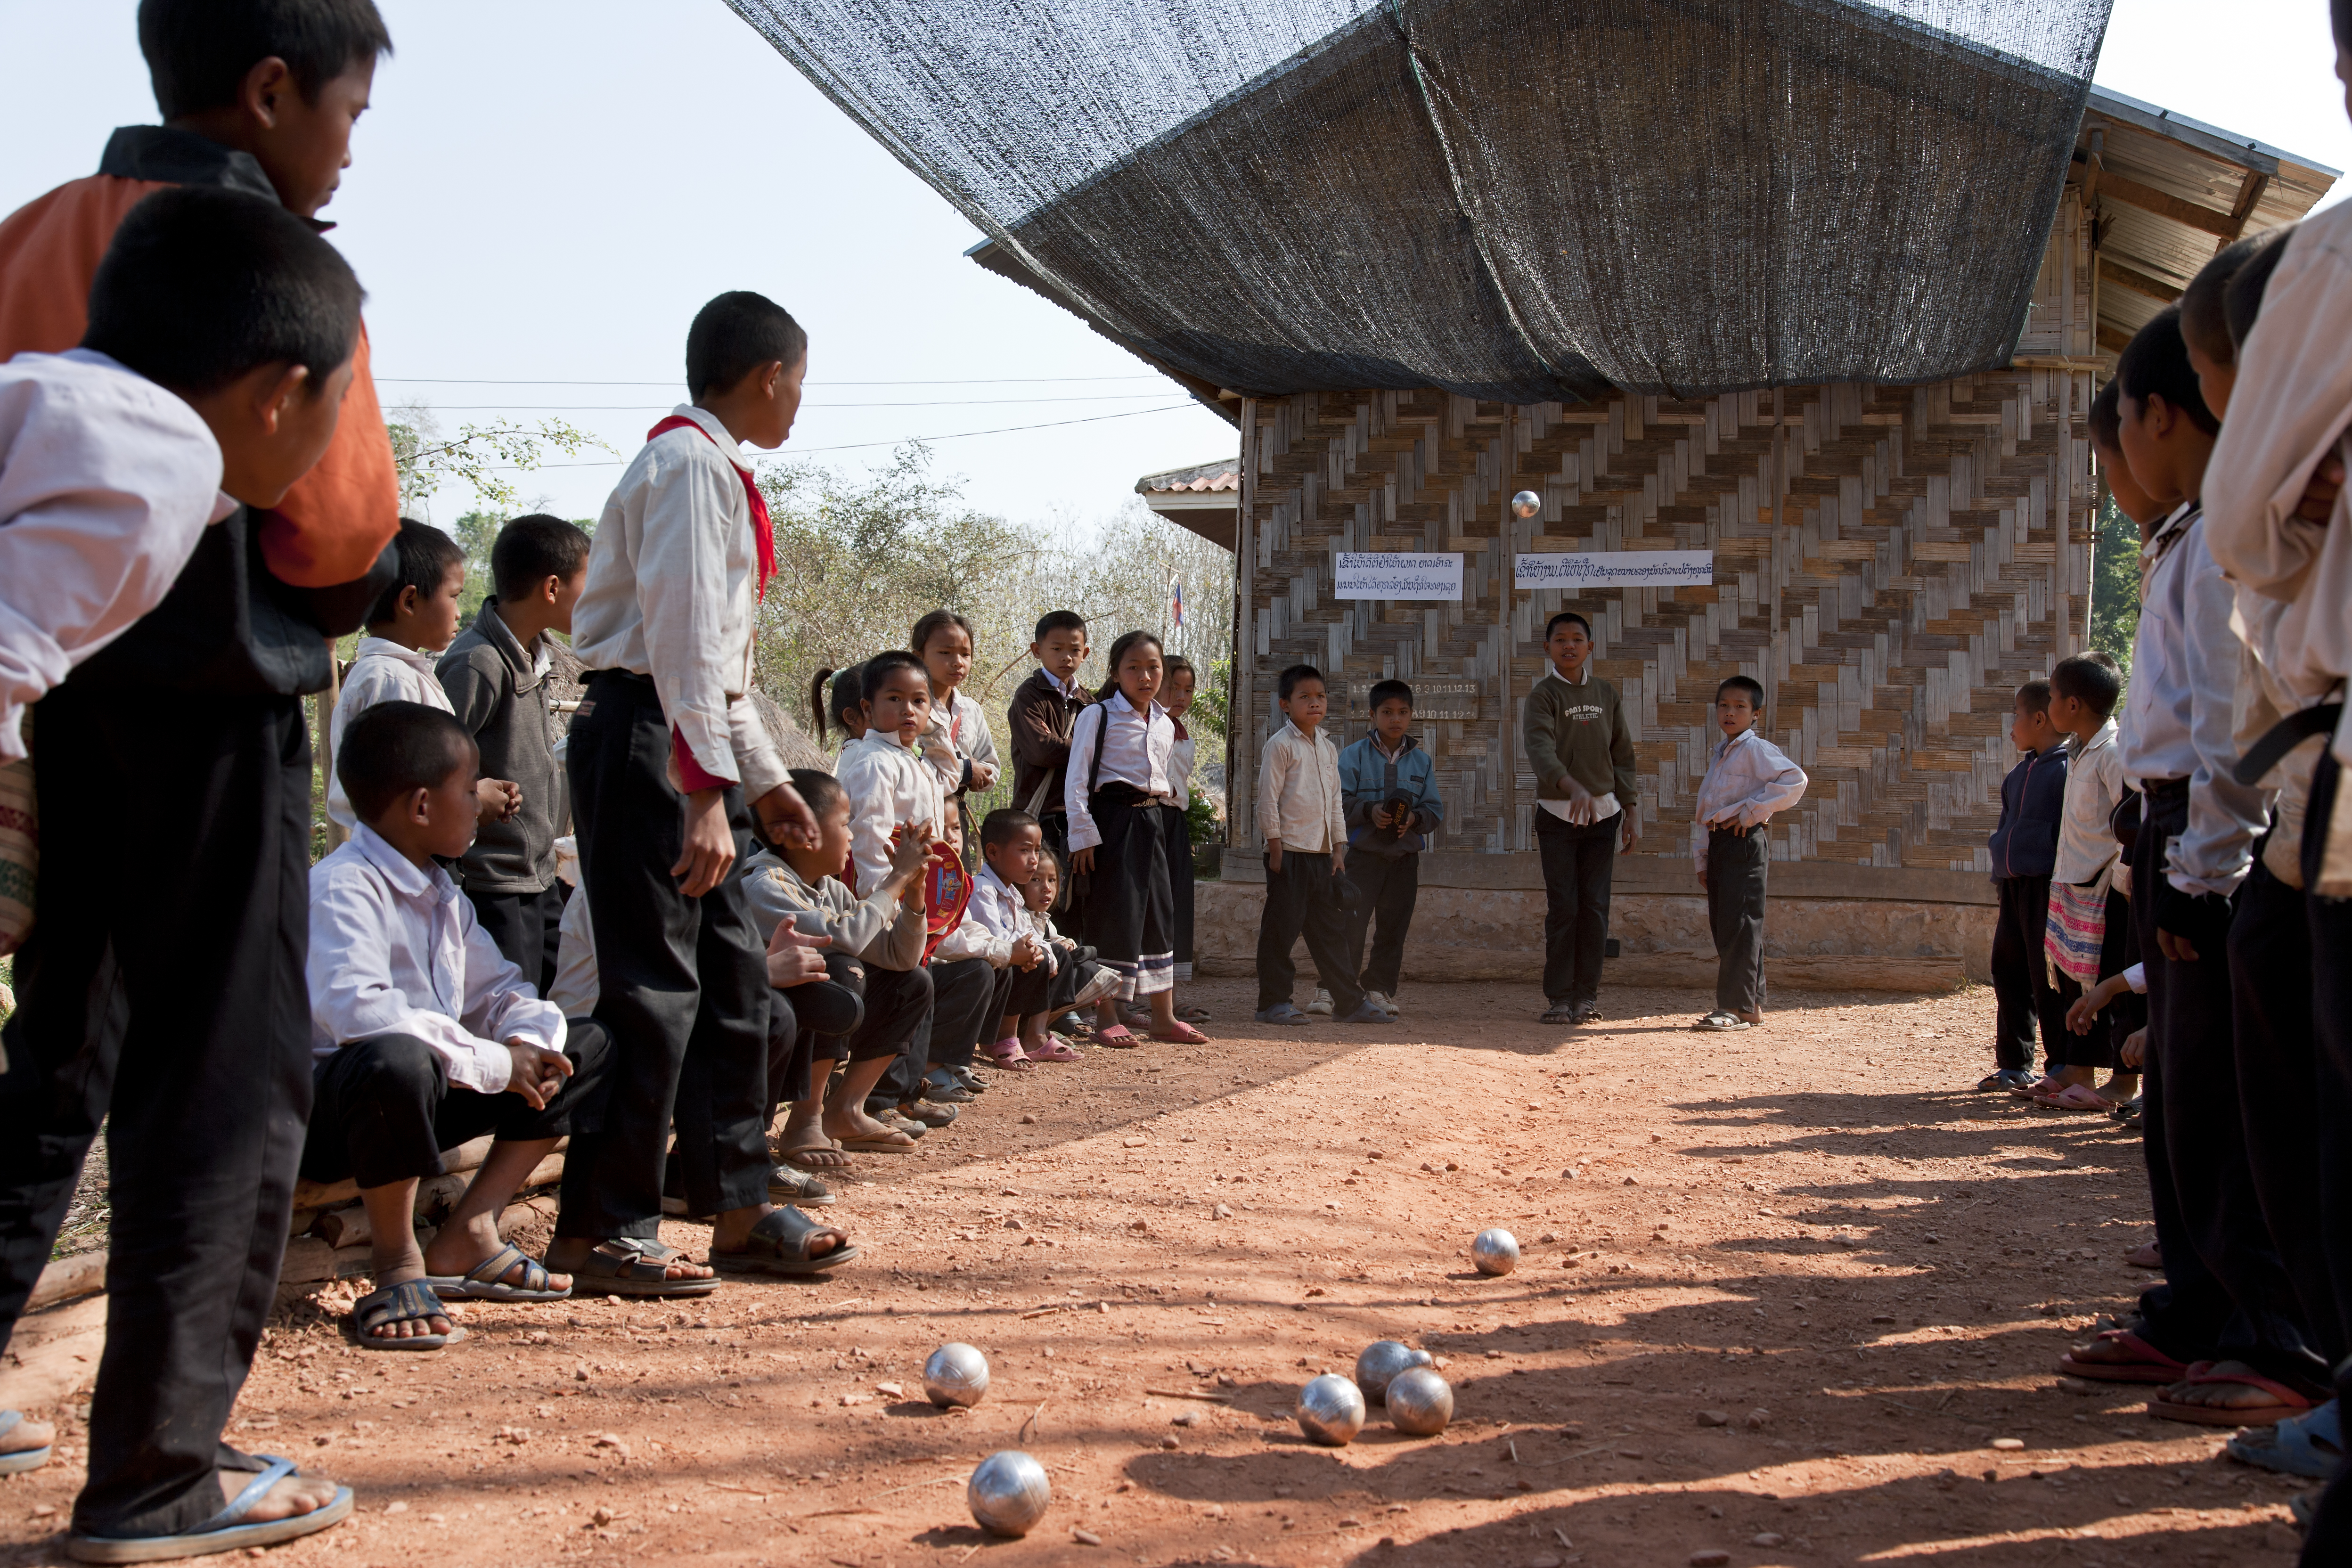 Boys are playing petanque at a mountainous village school in Laos. Photo by Bart Verweij for AusAID